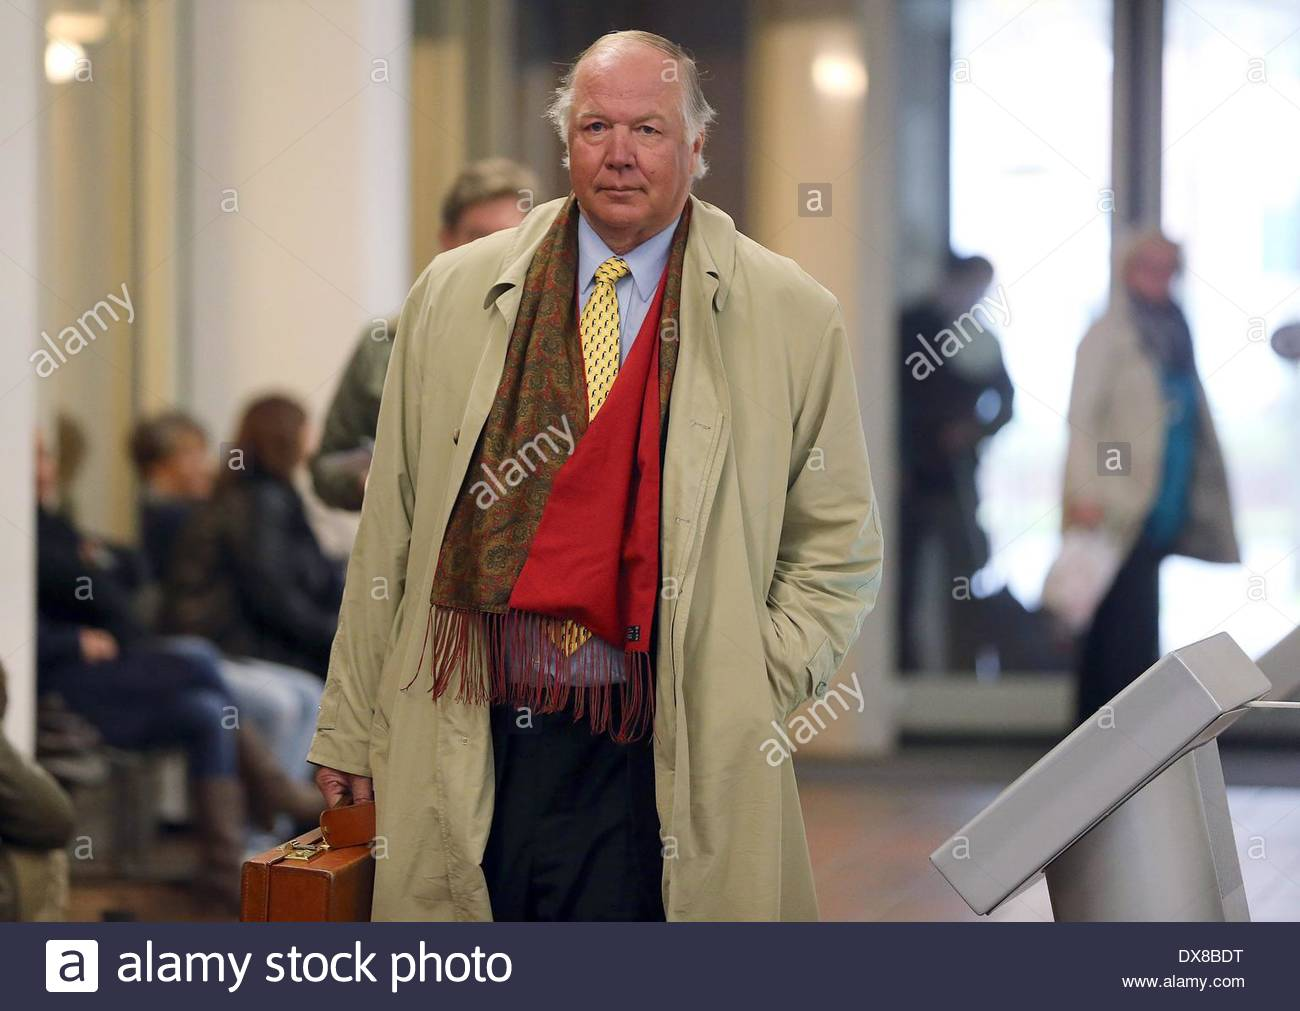 http://c8.alamy.com/comp/DX8BDT/epa04129513-german-banker-matthias-graf-von-krockow-arrives-at-the-DX8BDT.jpg